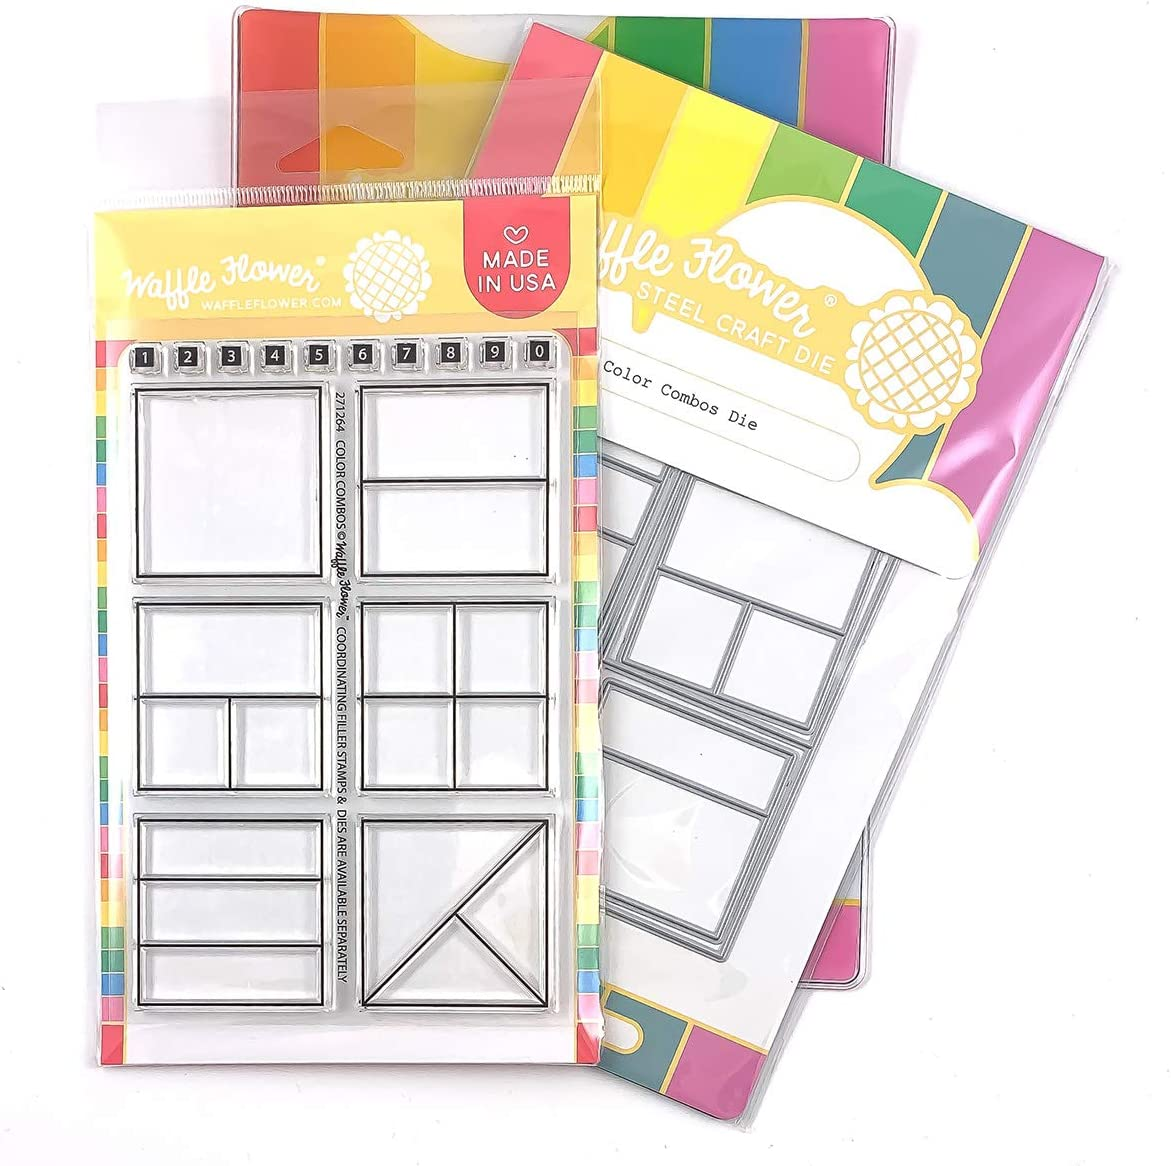 Waffle Flower Color Combos Die-organize your ink and paper supplies and document your favorite color combos